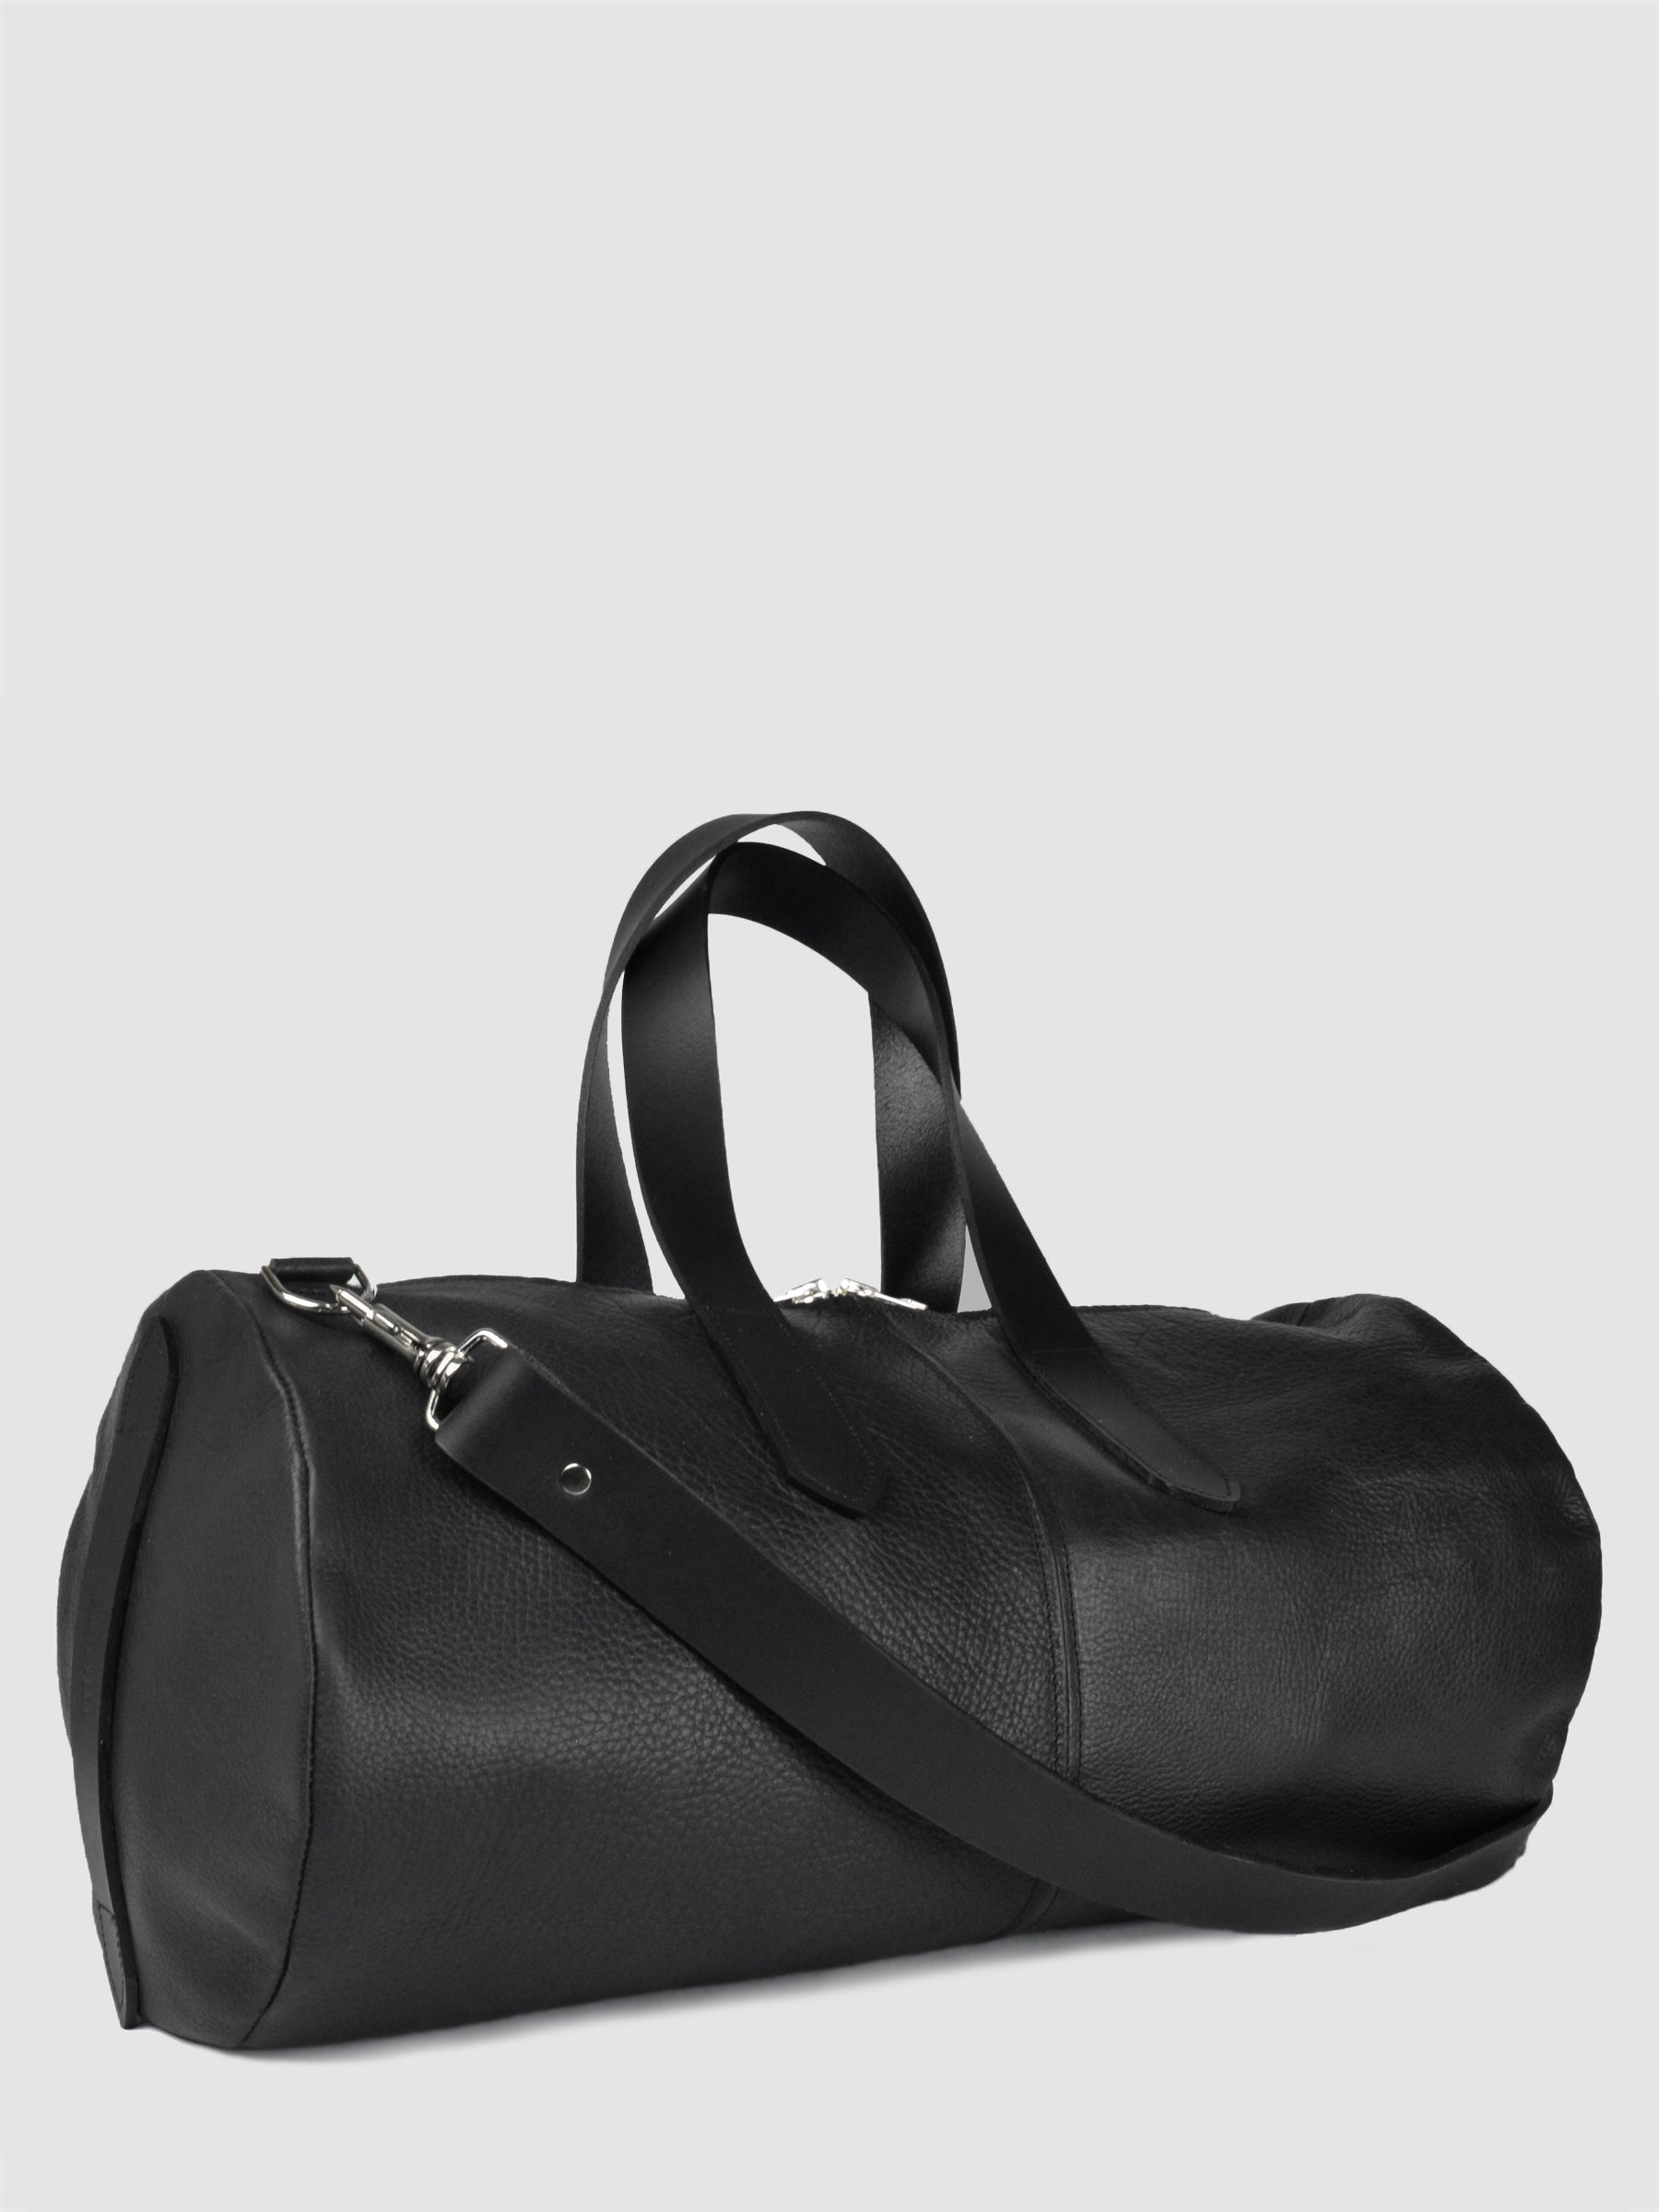 SONYA LEE DUFFLE BAG. TRAVEL DUFFLE. LEATHER DUFFLE. MADE IN CANADA. FREE SHIPPING